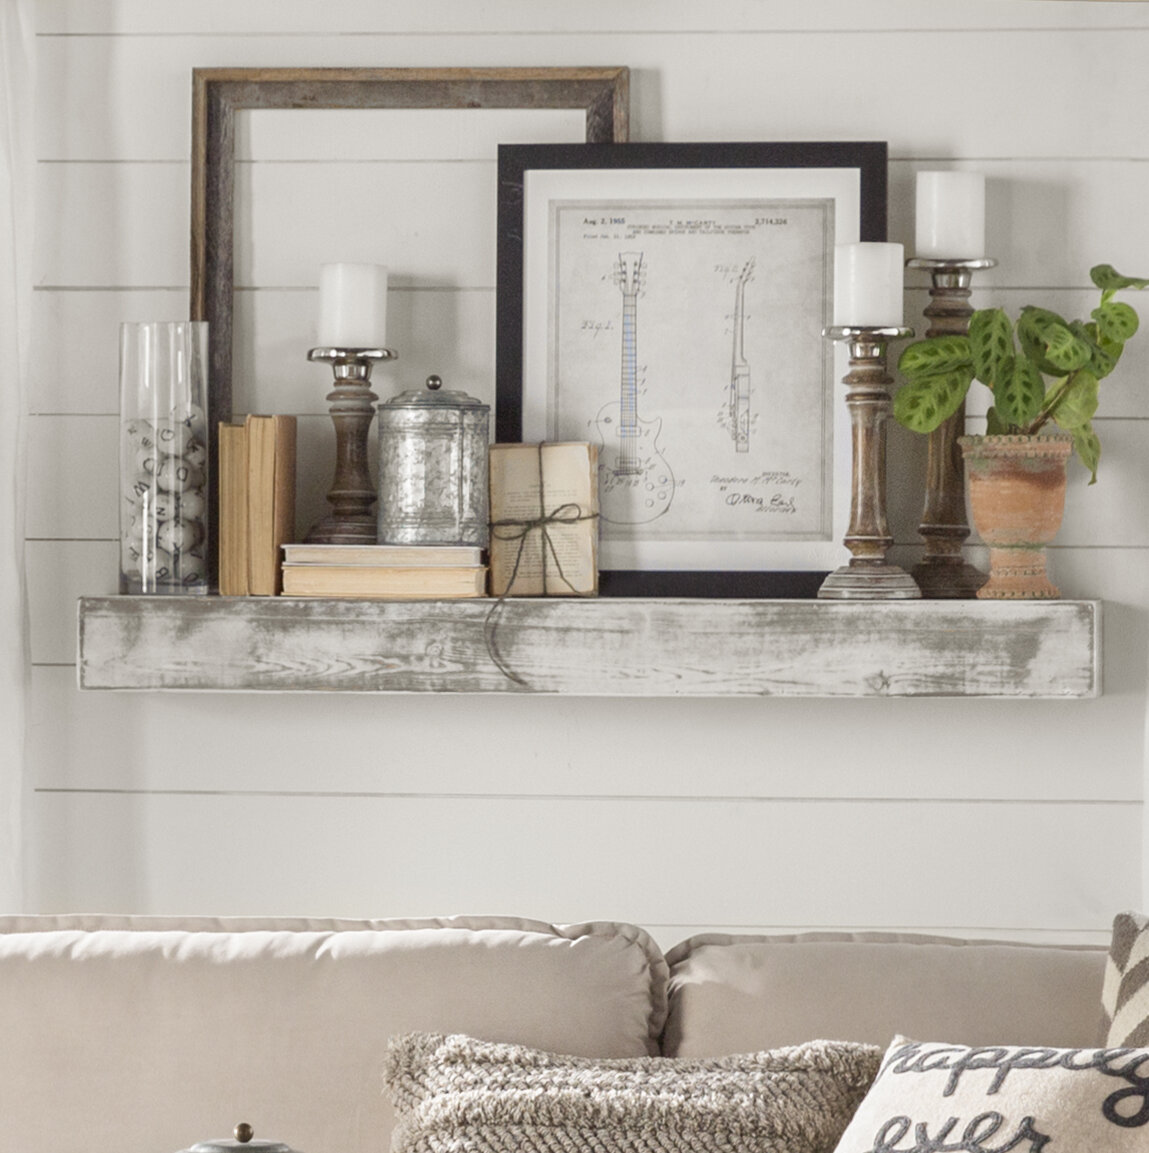 Essex Hand Crafted Wood Products Wayfair